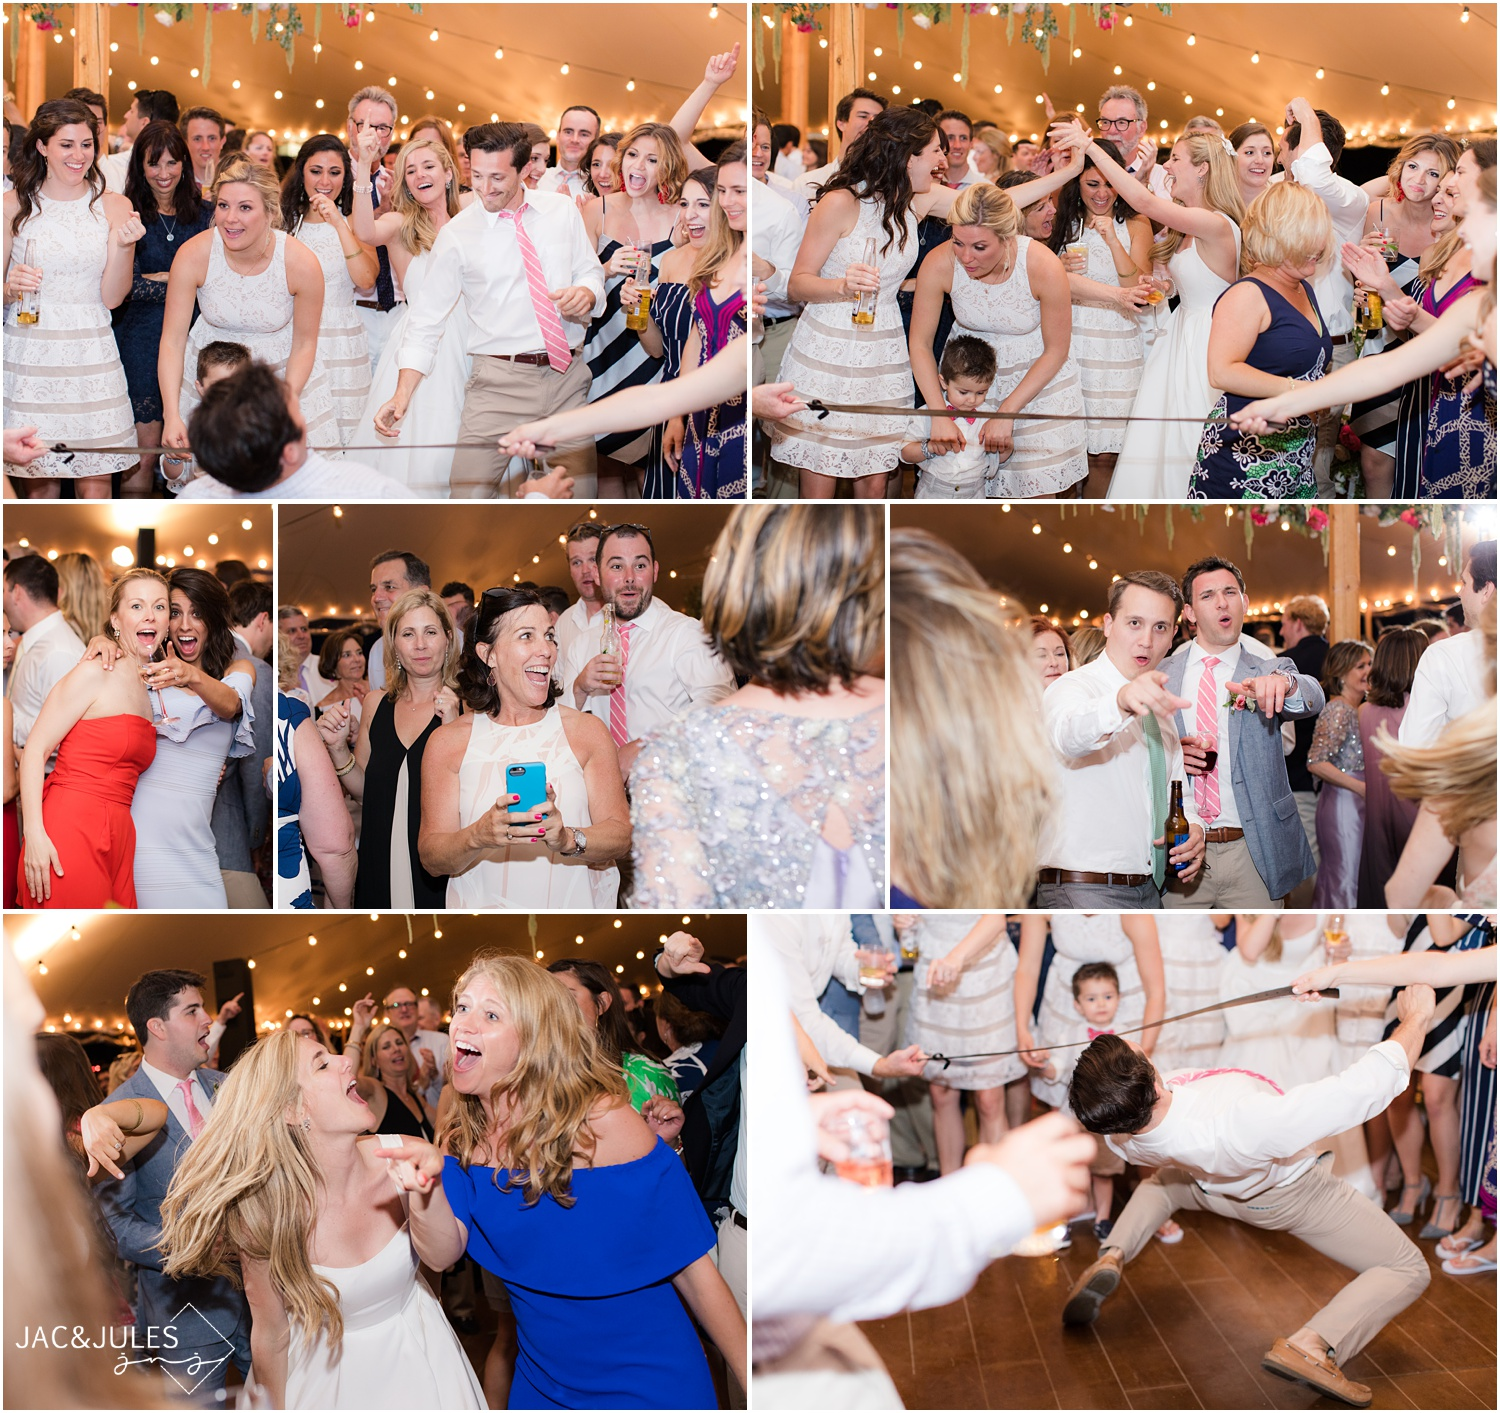 Wild wedding reception dancing to The Nocturnes band in Mantoloking, NJ.